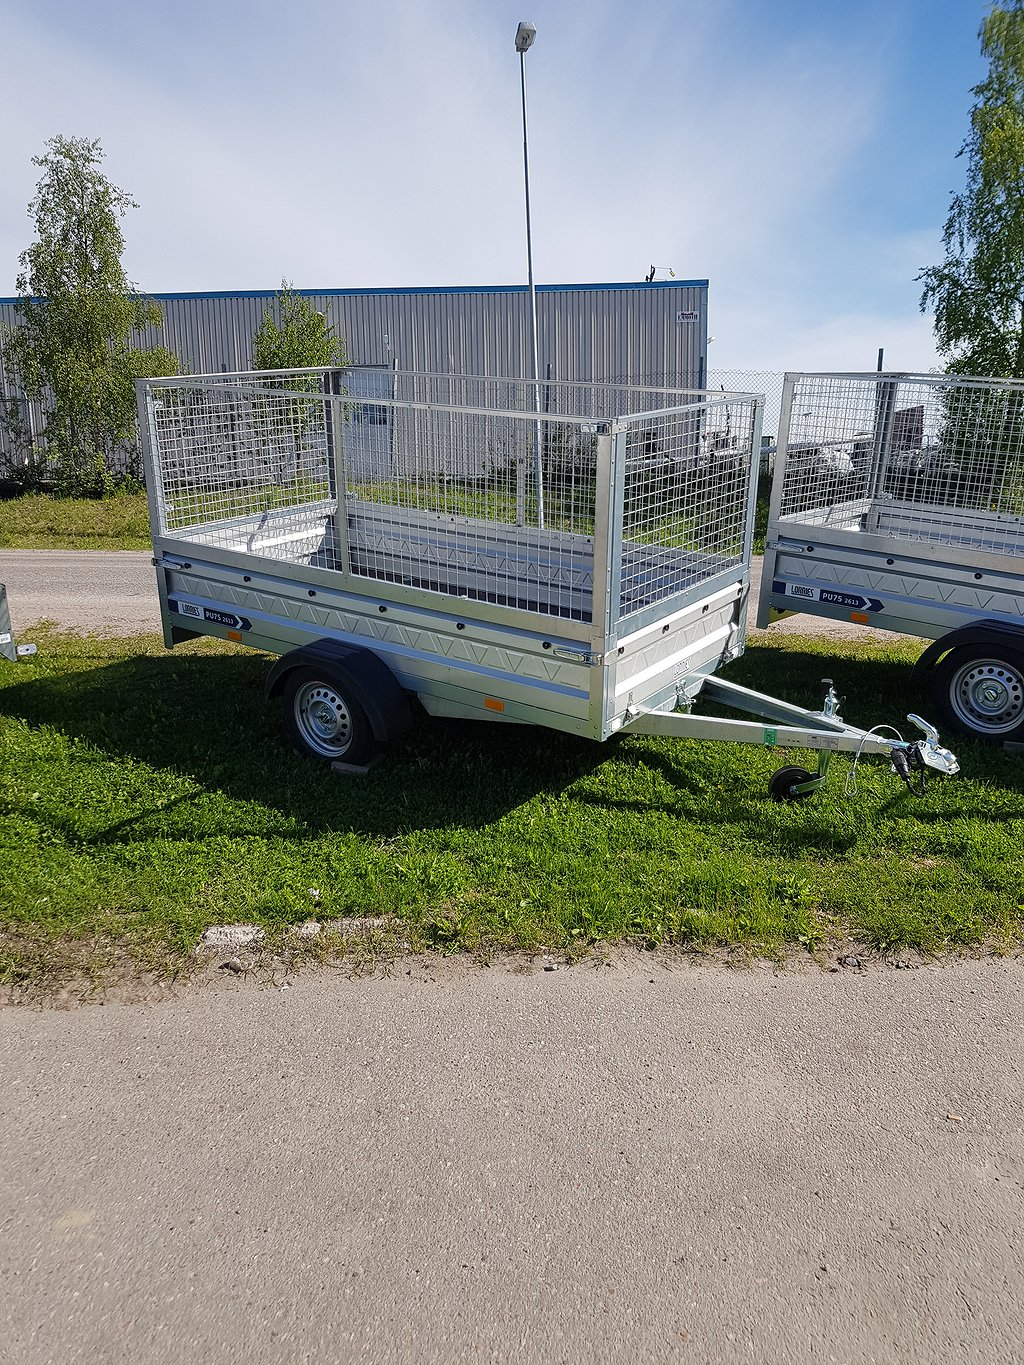 Lorries LORRIES PU75 Inkl nätläm 80 cm